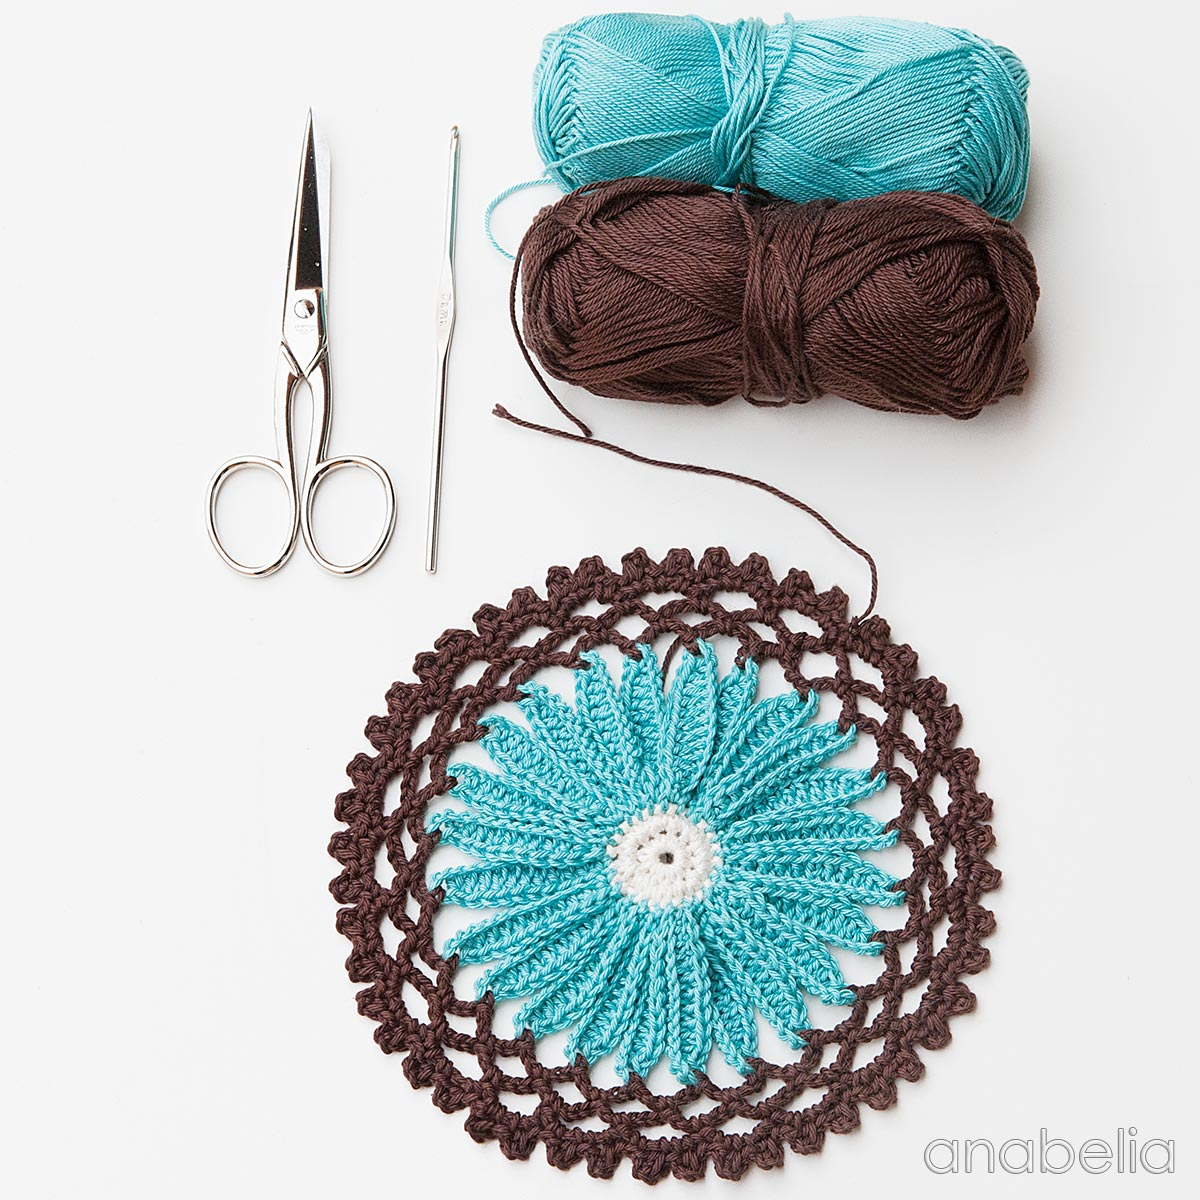 Daisy flower crochet motif on my work table this week | Anabelia ...